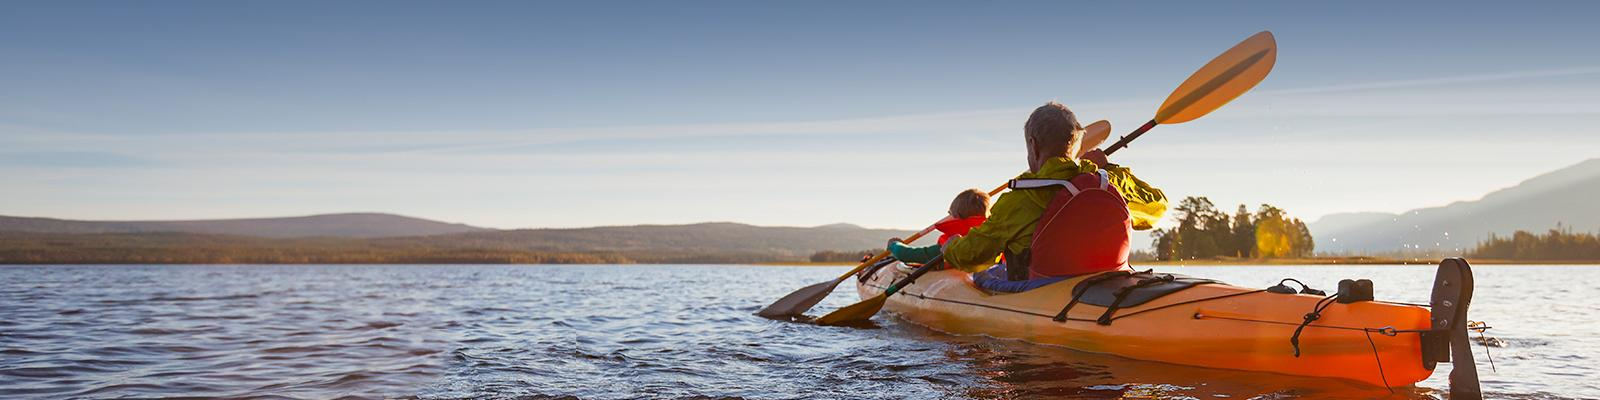 An image of adult and child kayaking on a lake.